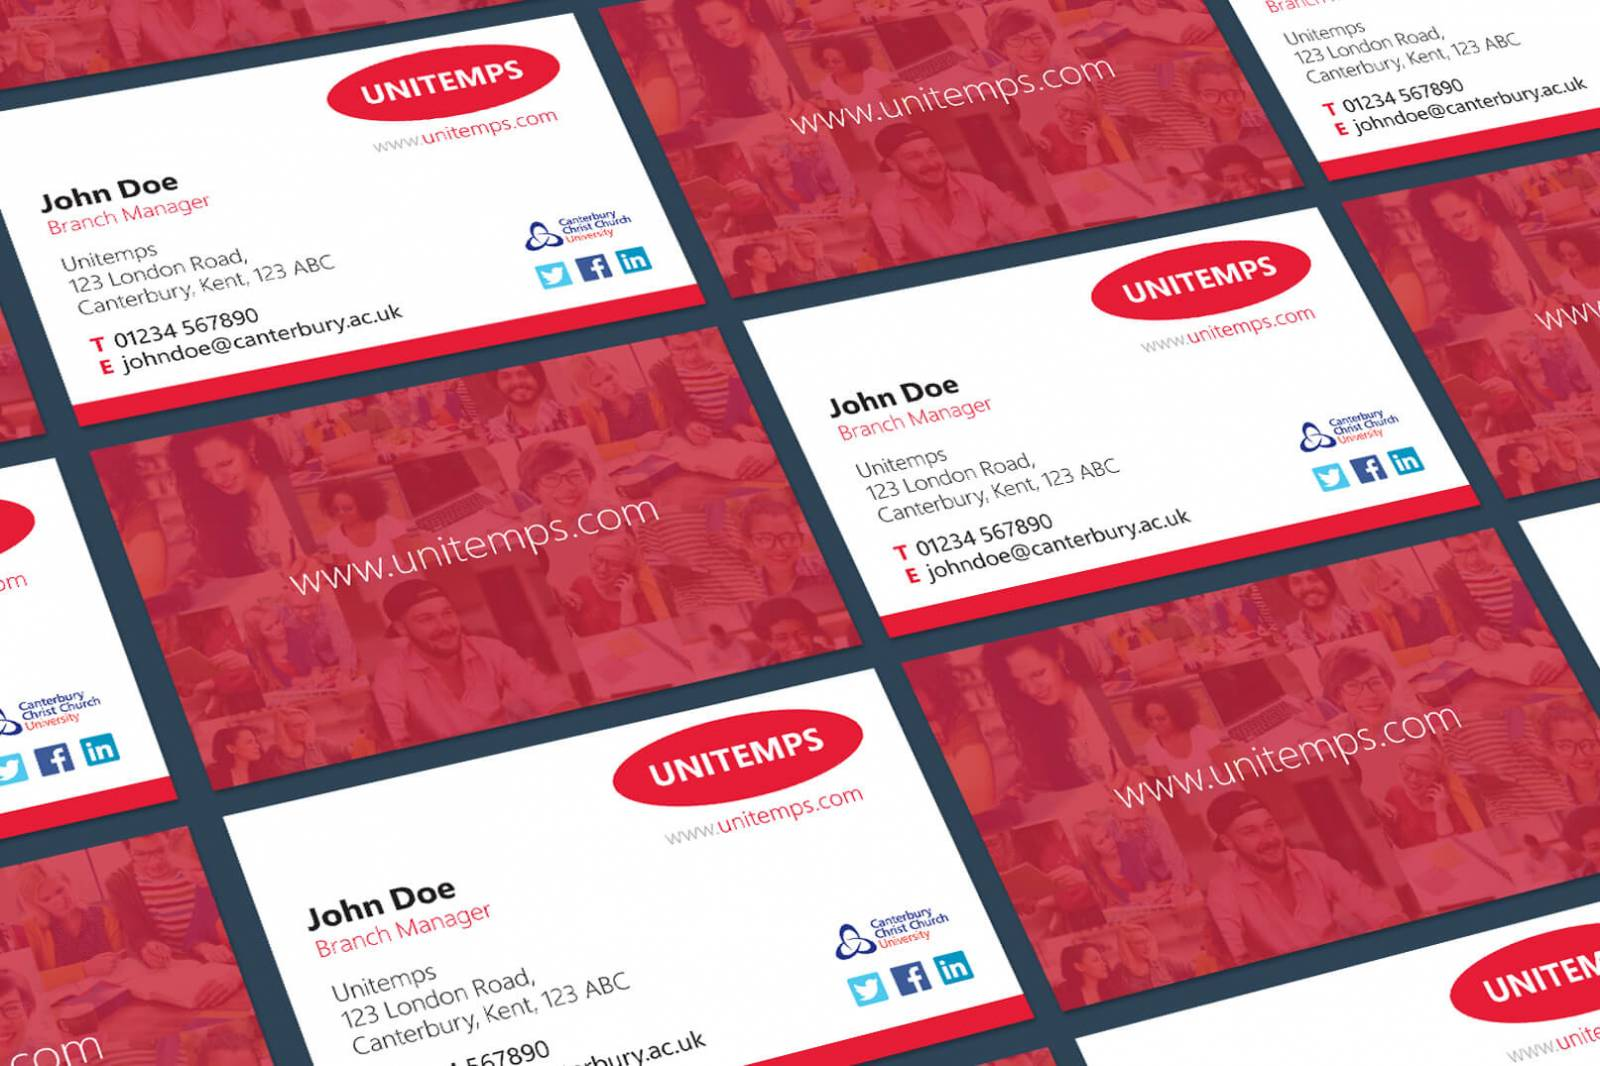 Unitemps-business-card-design-agency-graphic-design-canterbury.jpg